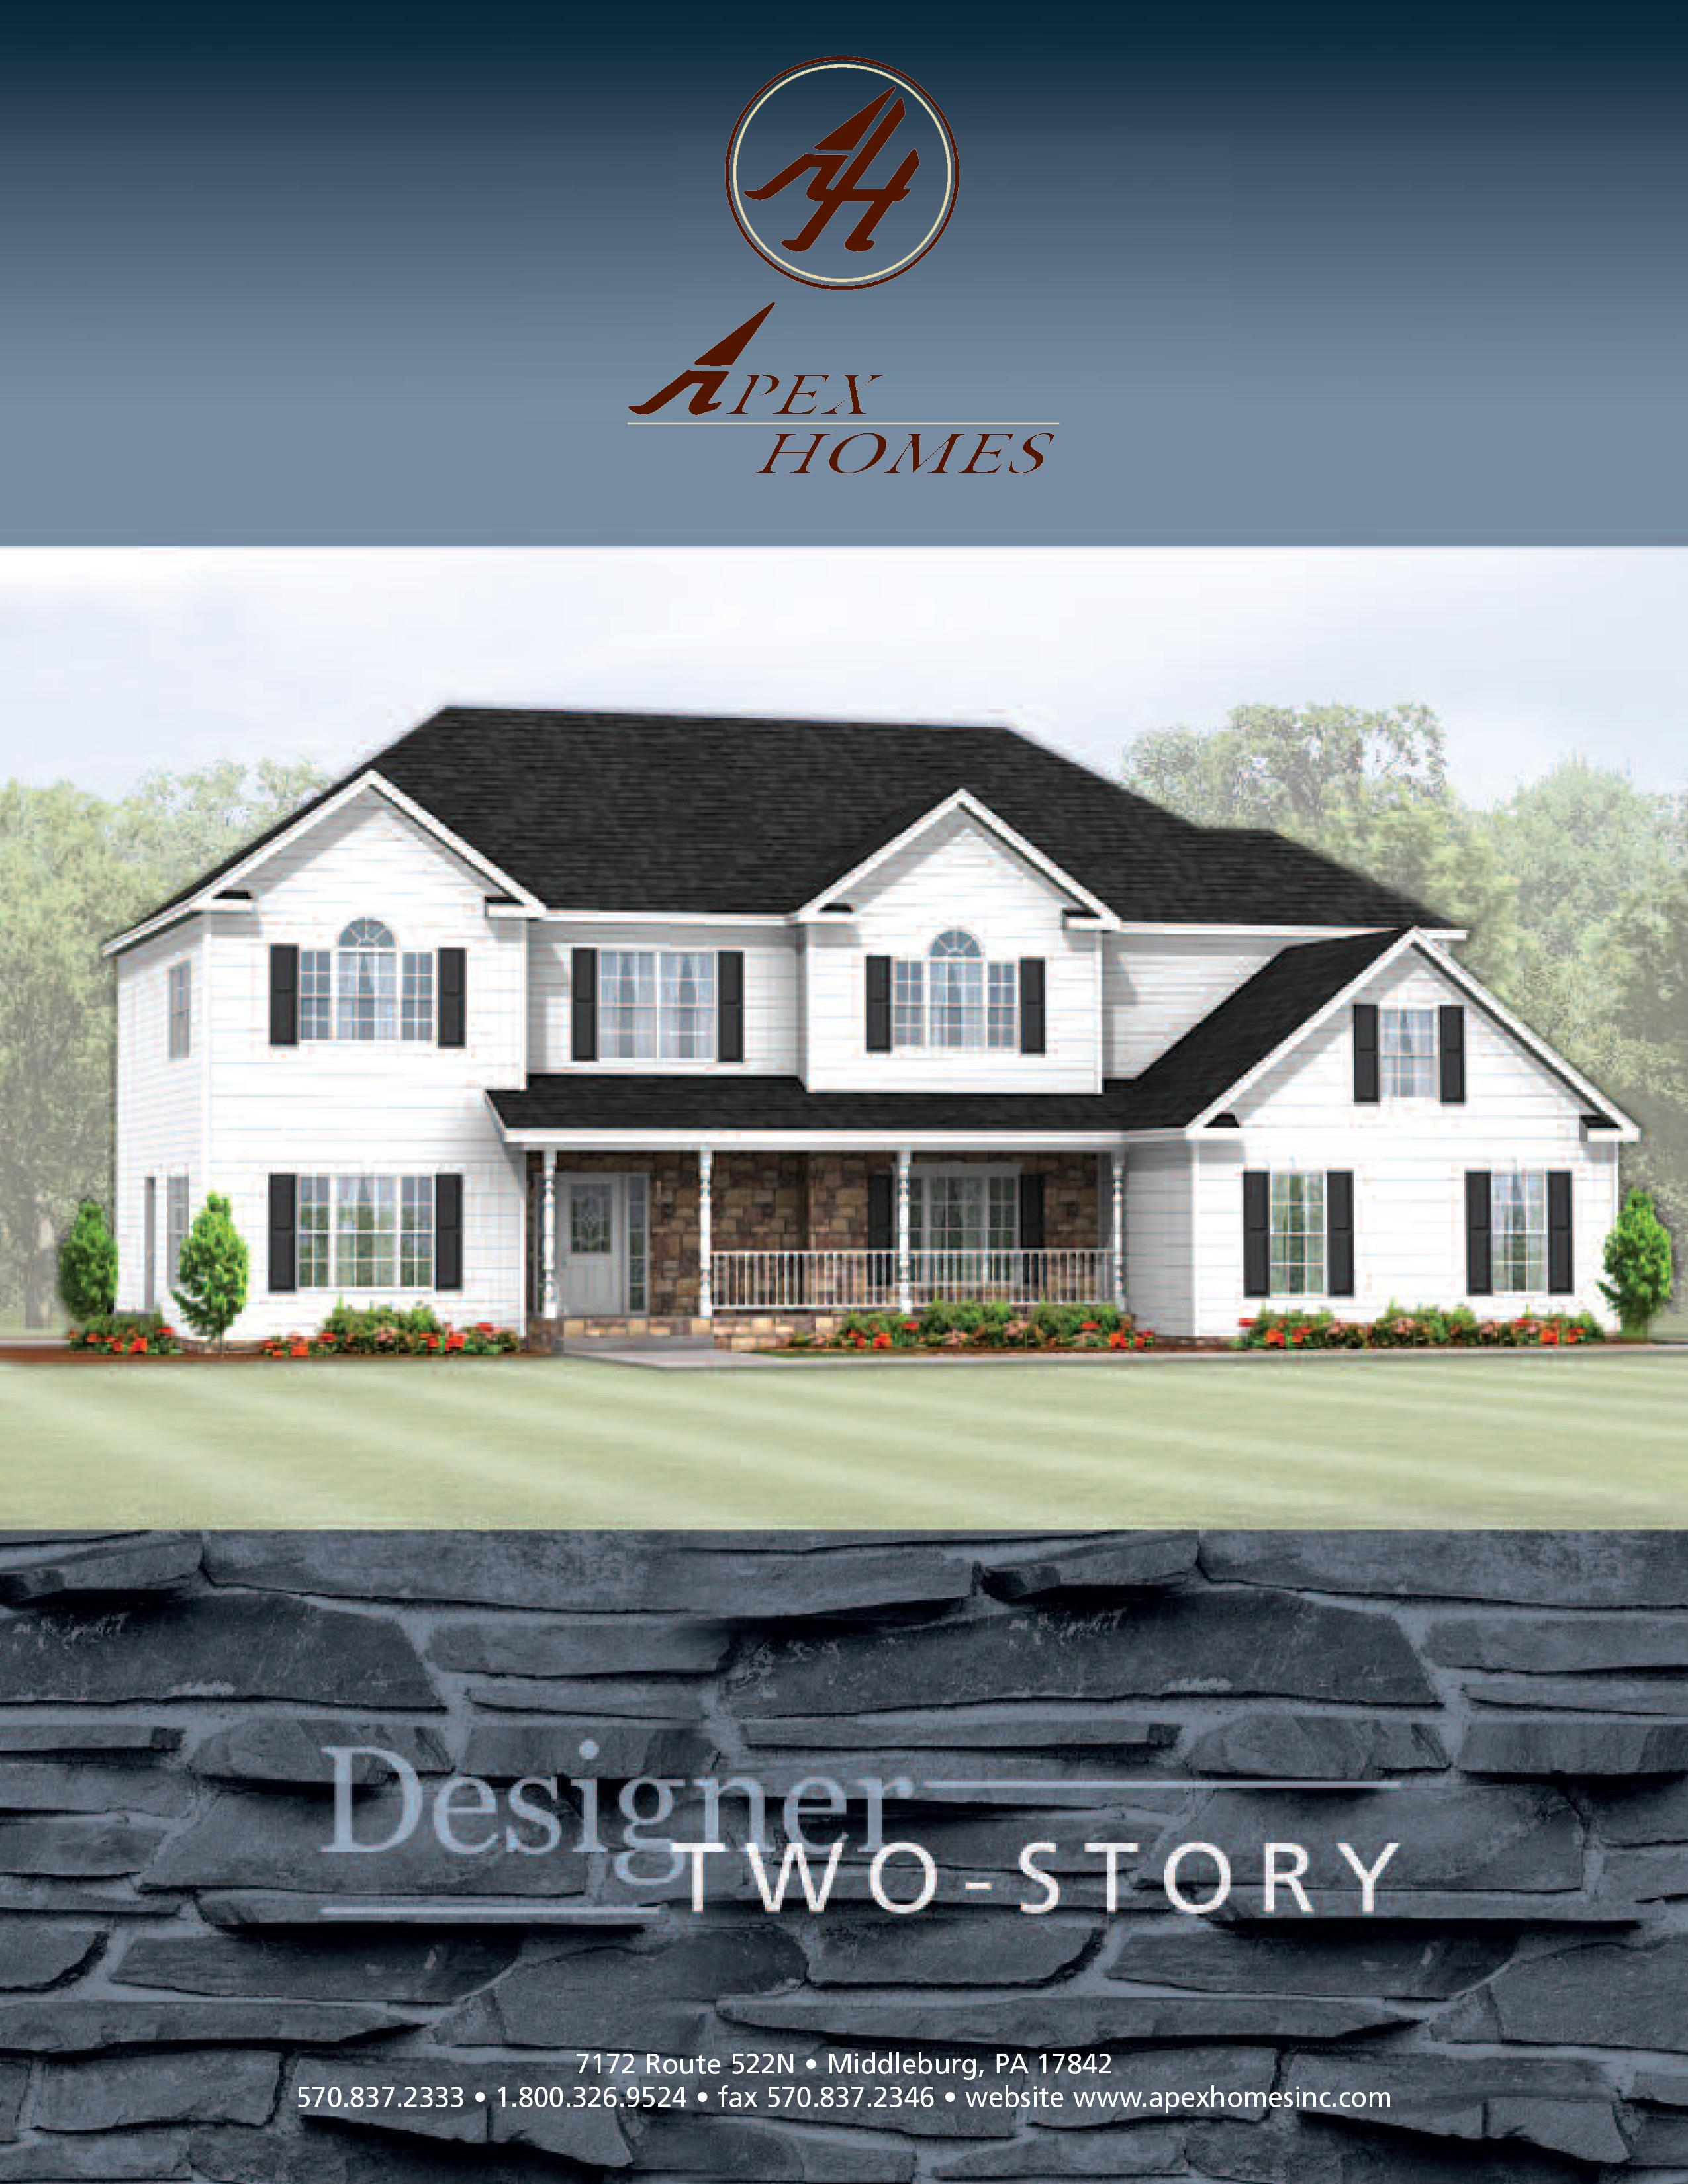 Products | Building a New Home | Apex Homes of PA